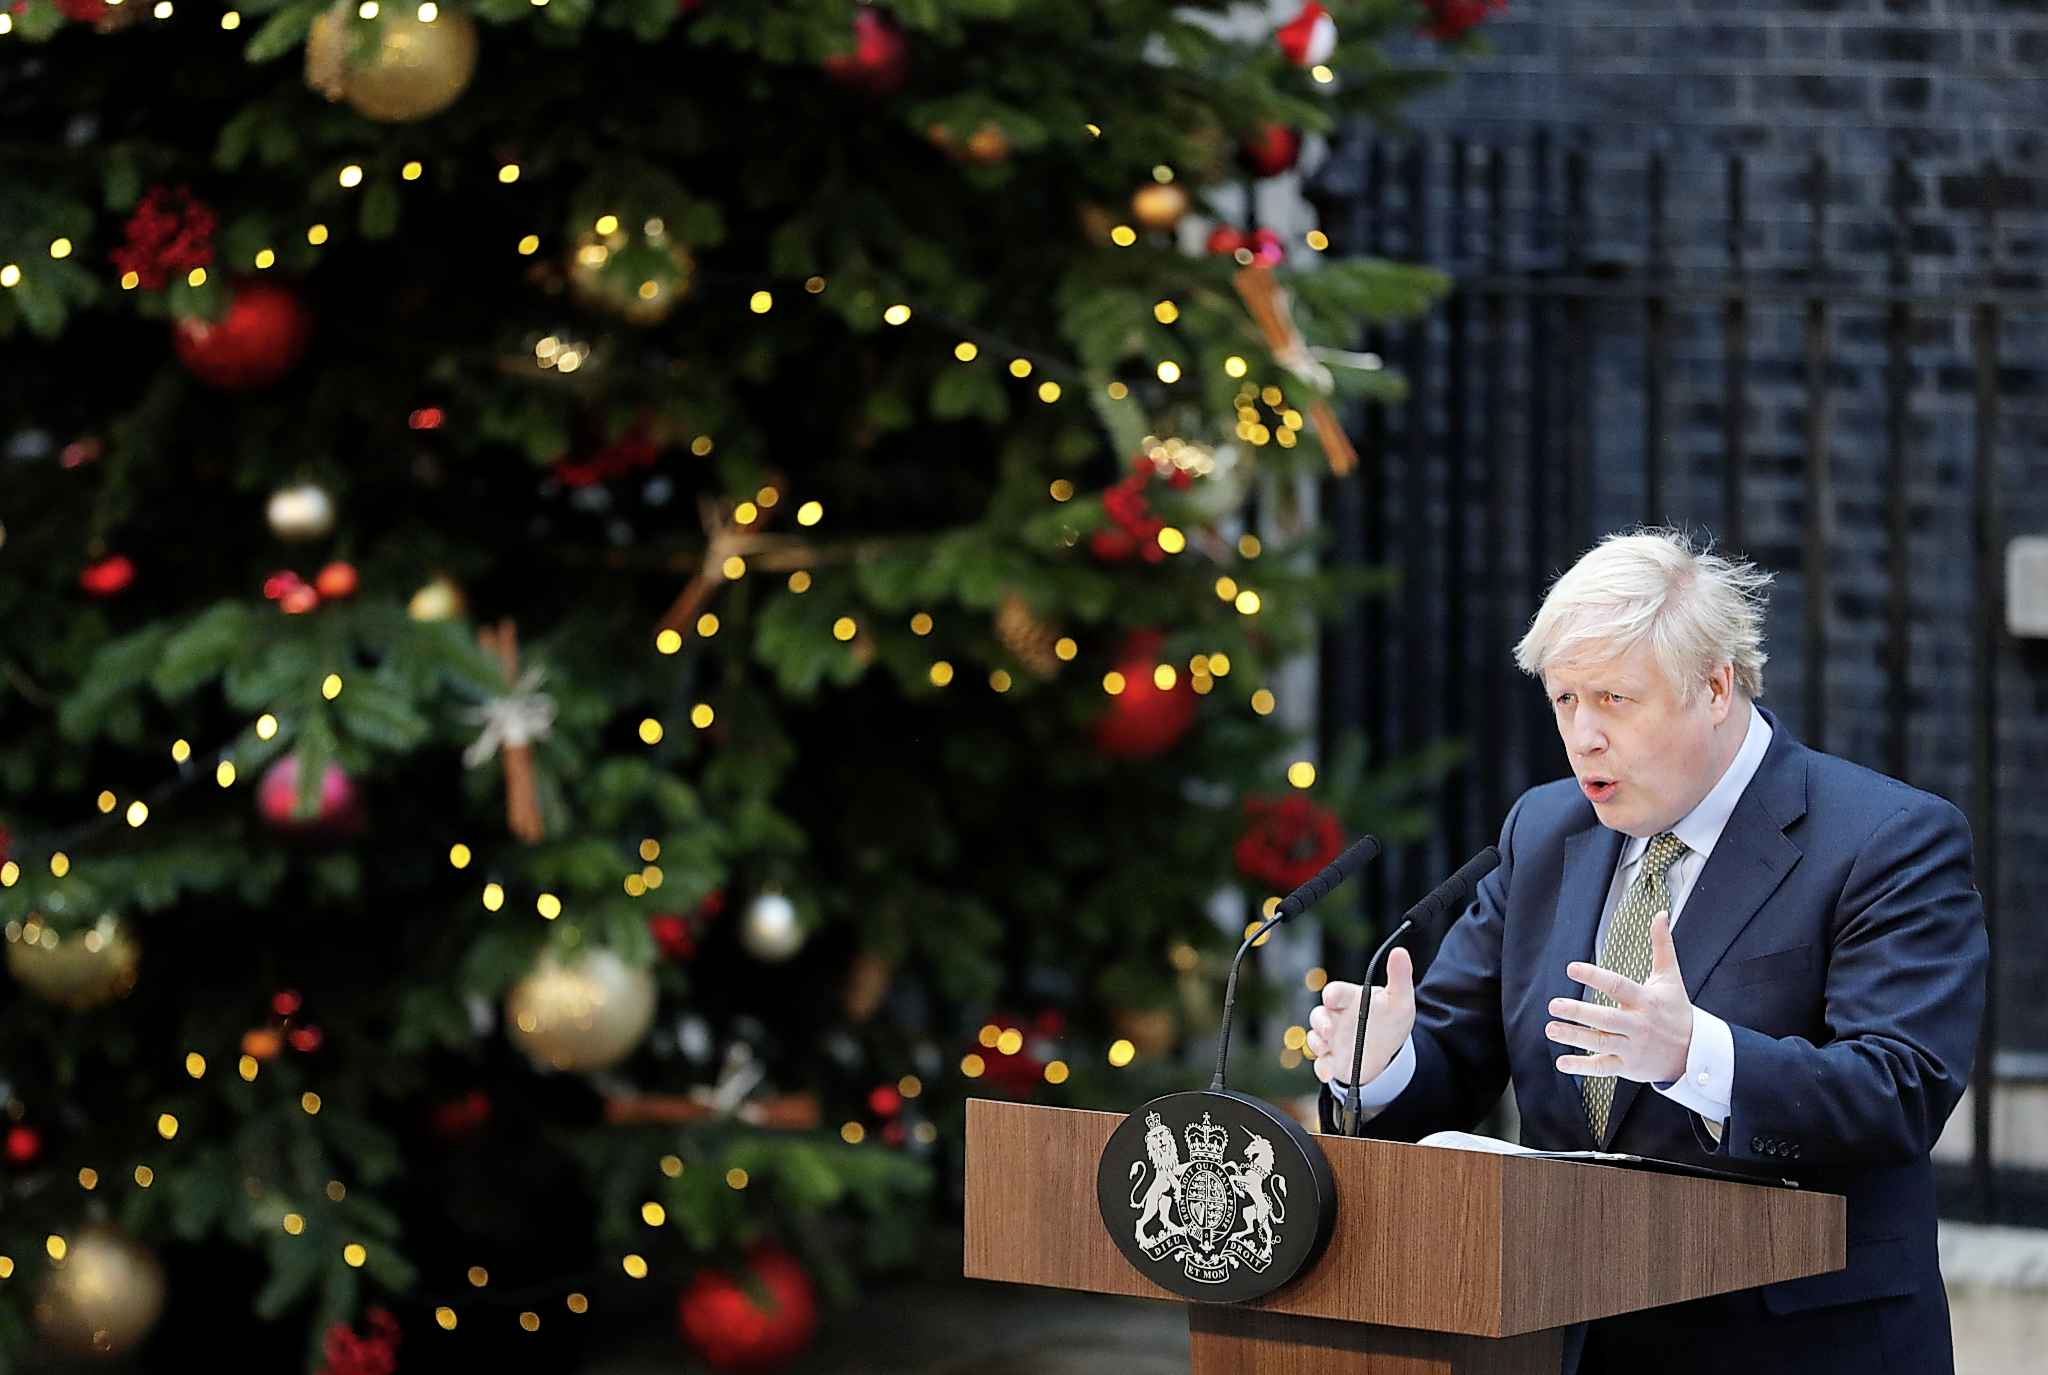 Johnson will have to preserve the advantages of British trade with Europe while appearing to sever the existing link. (Frank Augstein / The Associated Press files)